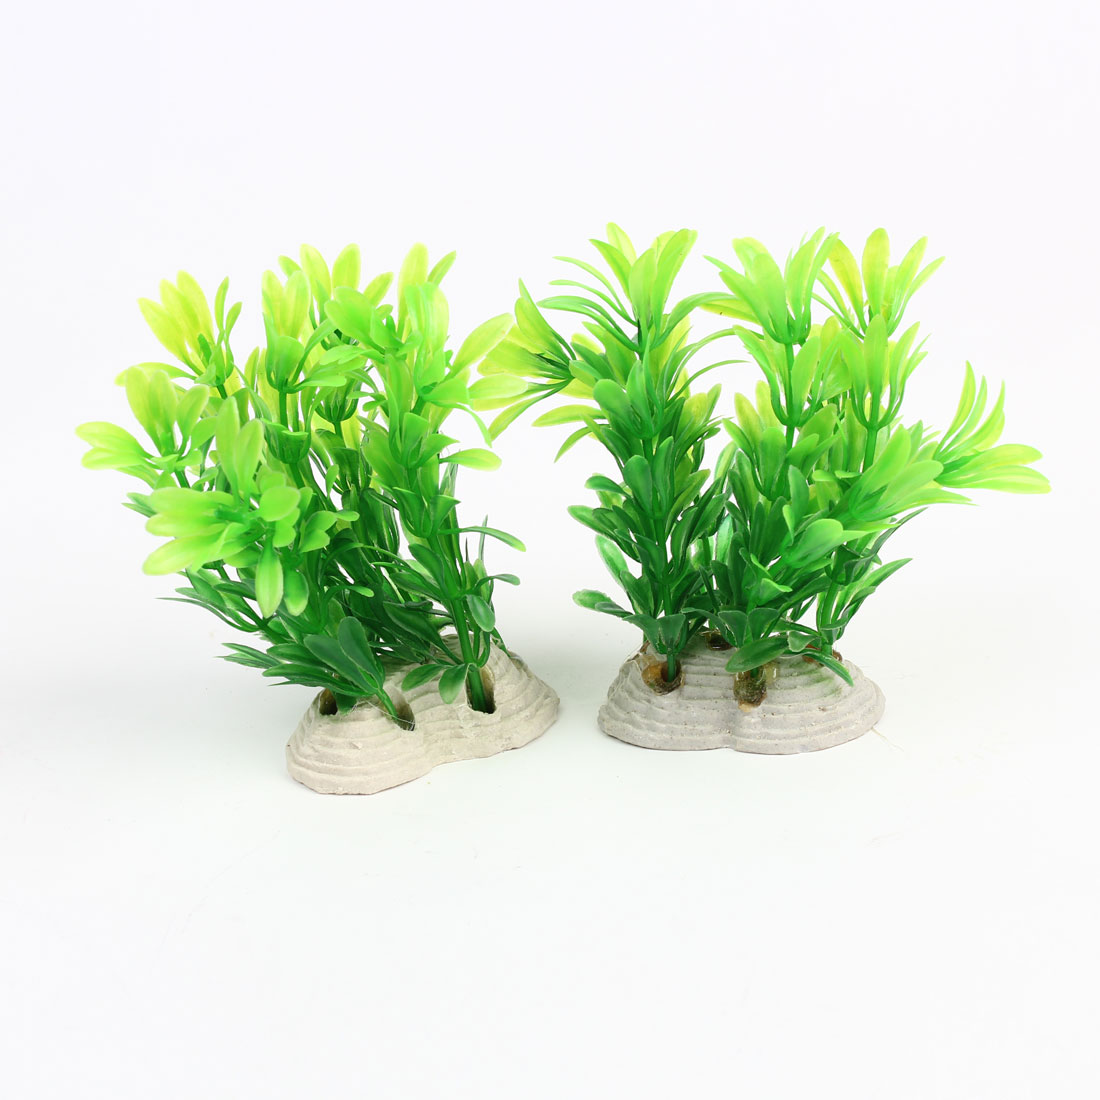 Aquarium Fishbowl Ornament Green Leavea Plastic Underwater Plant 12cm 2Pcs